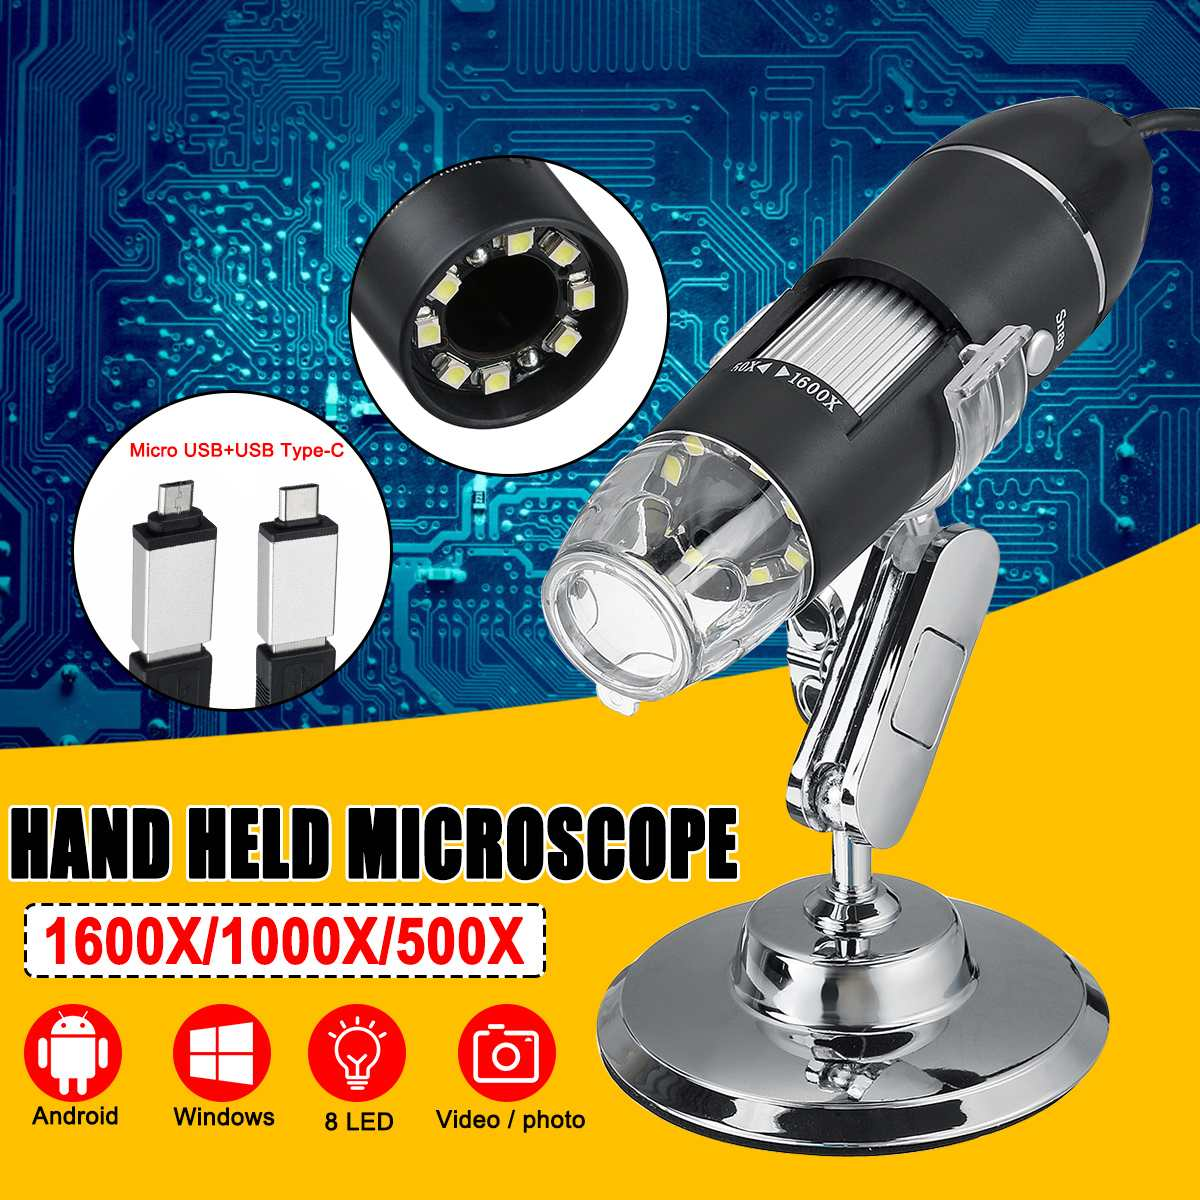 3 In 1 8 LED Digital Microscope Type-C/Micro USB For Android Phone PC Magnifier Electronic Digital Microscope 500X 1000X 1600X